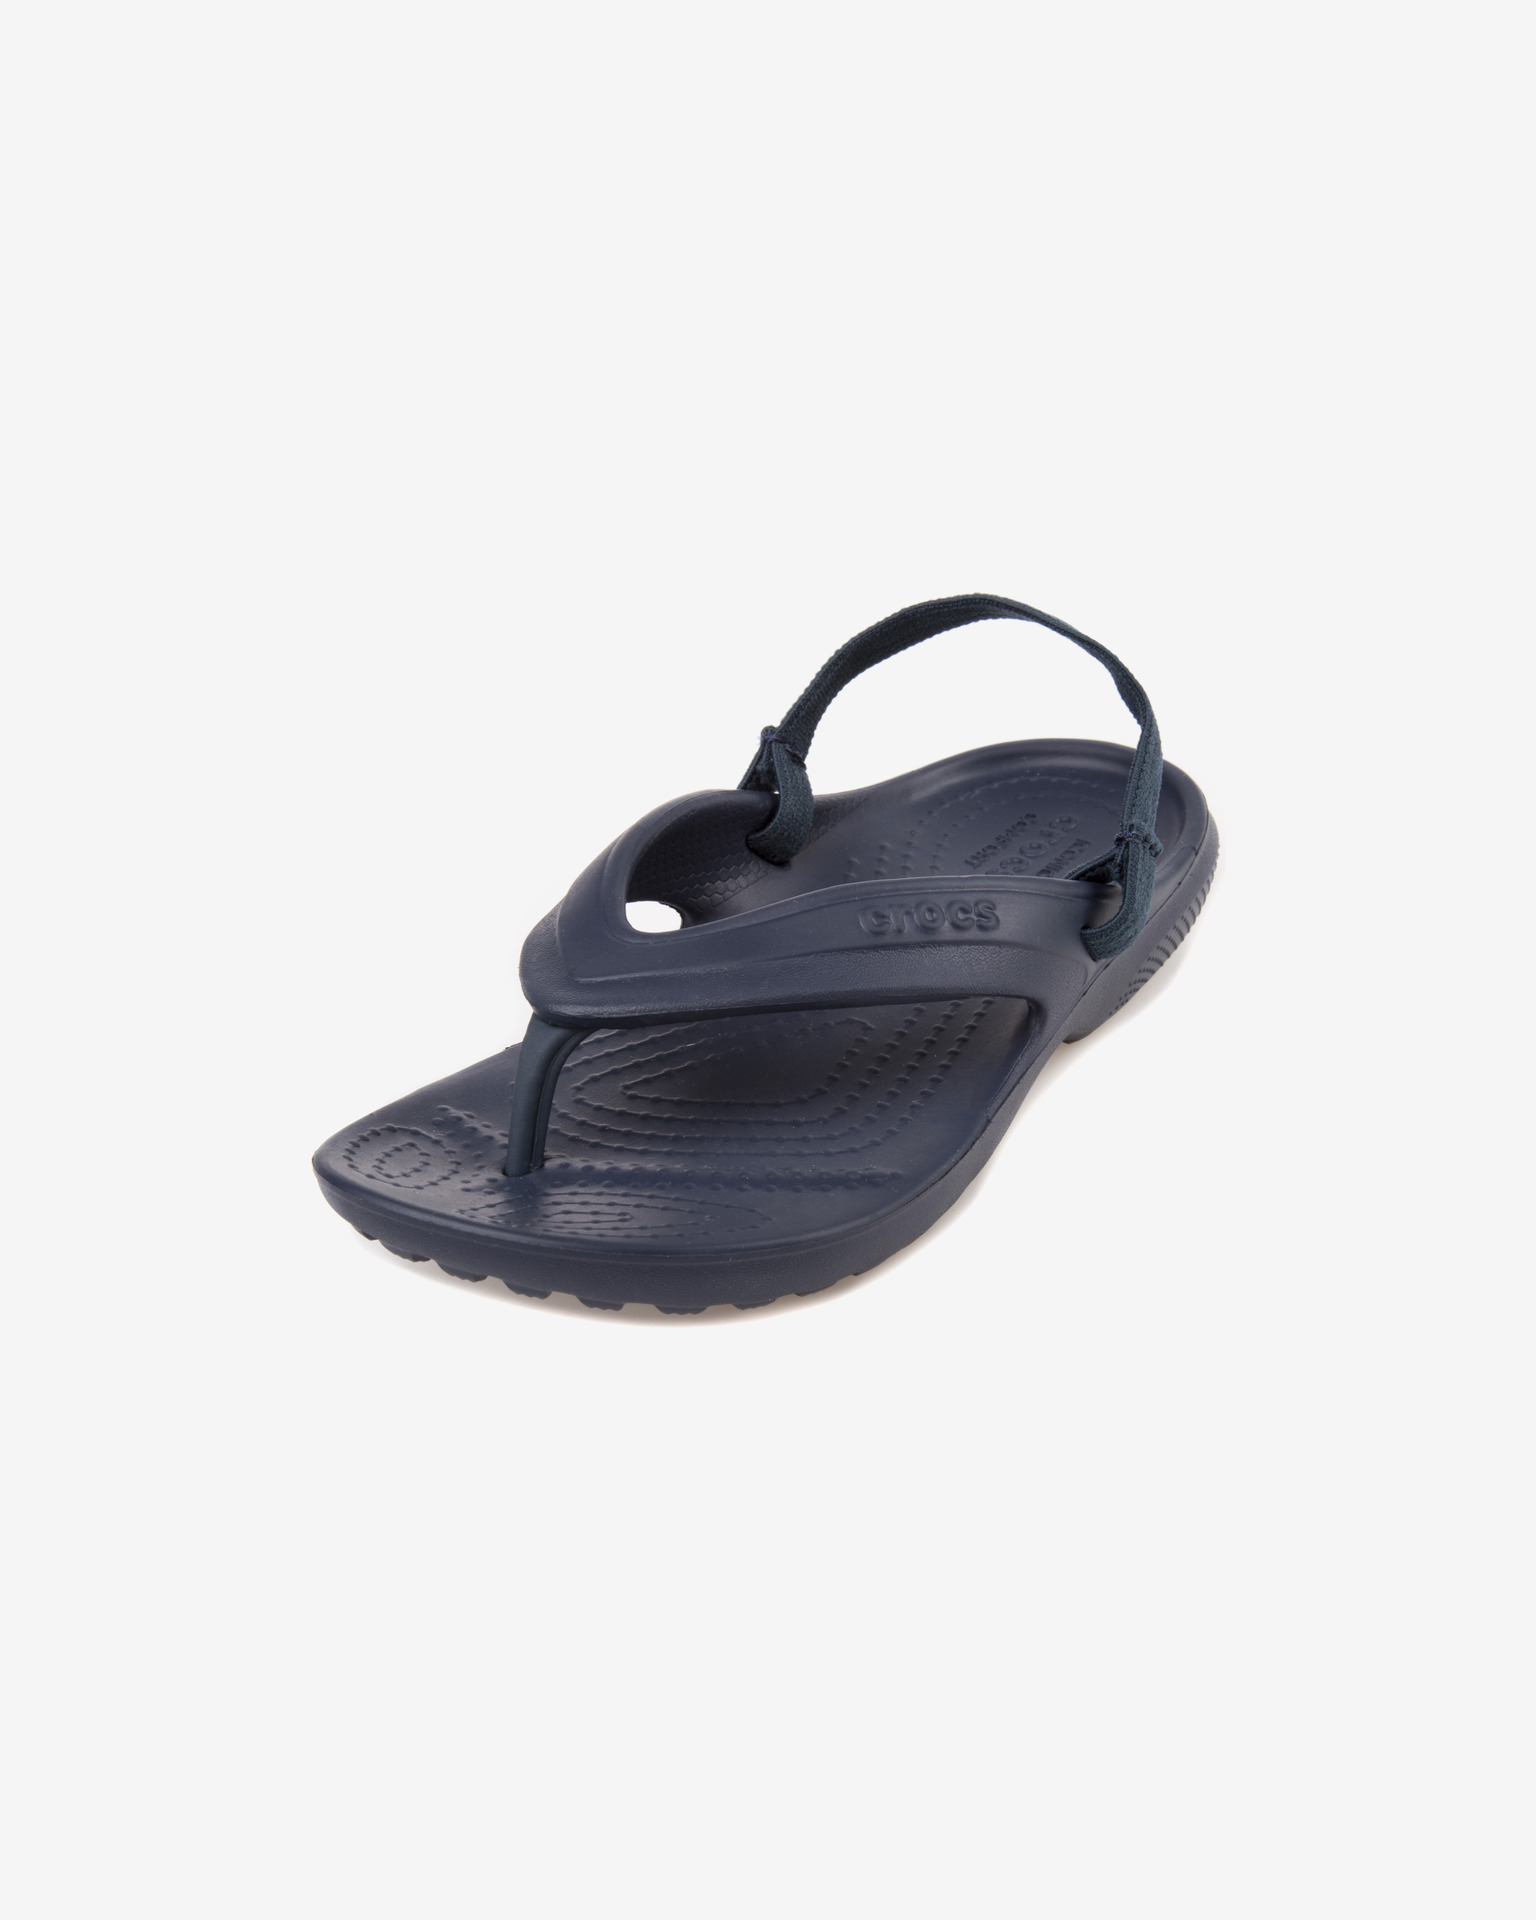 The Crocs™ Kids' Classic flip flops are a sleek, slender version of the original Crocs™ clog. The wide, roomy footbed is made from Croslite™ PCCR material, which molds to kids' feet. Ergonomic styling includes a supportive footbed and built-in arch support/5().